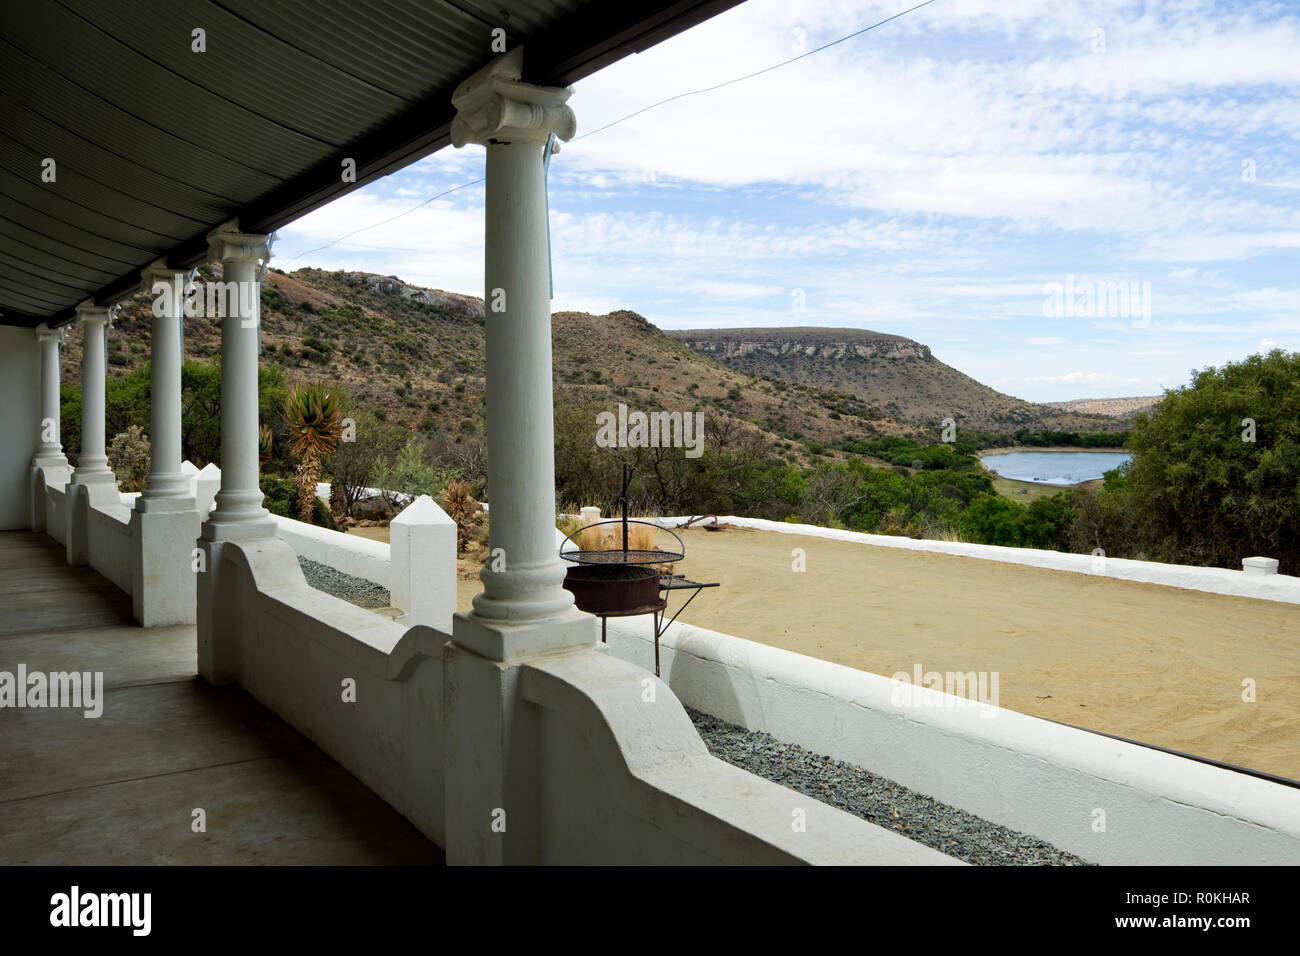 View from a veranda at Mountain Zebra bush lodge - Stock Image